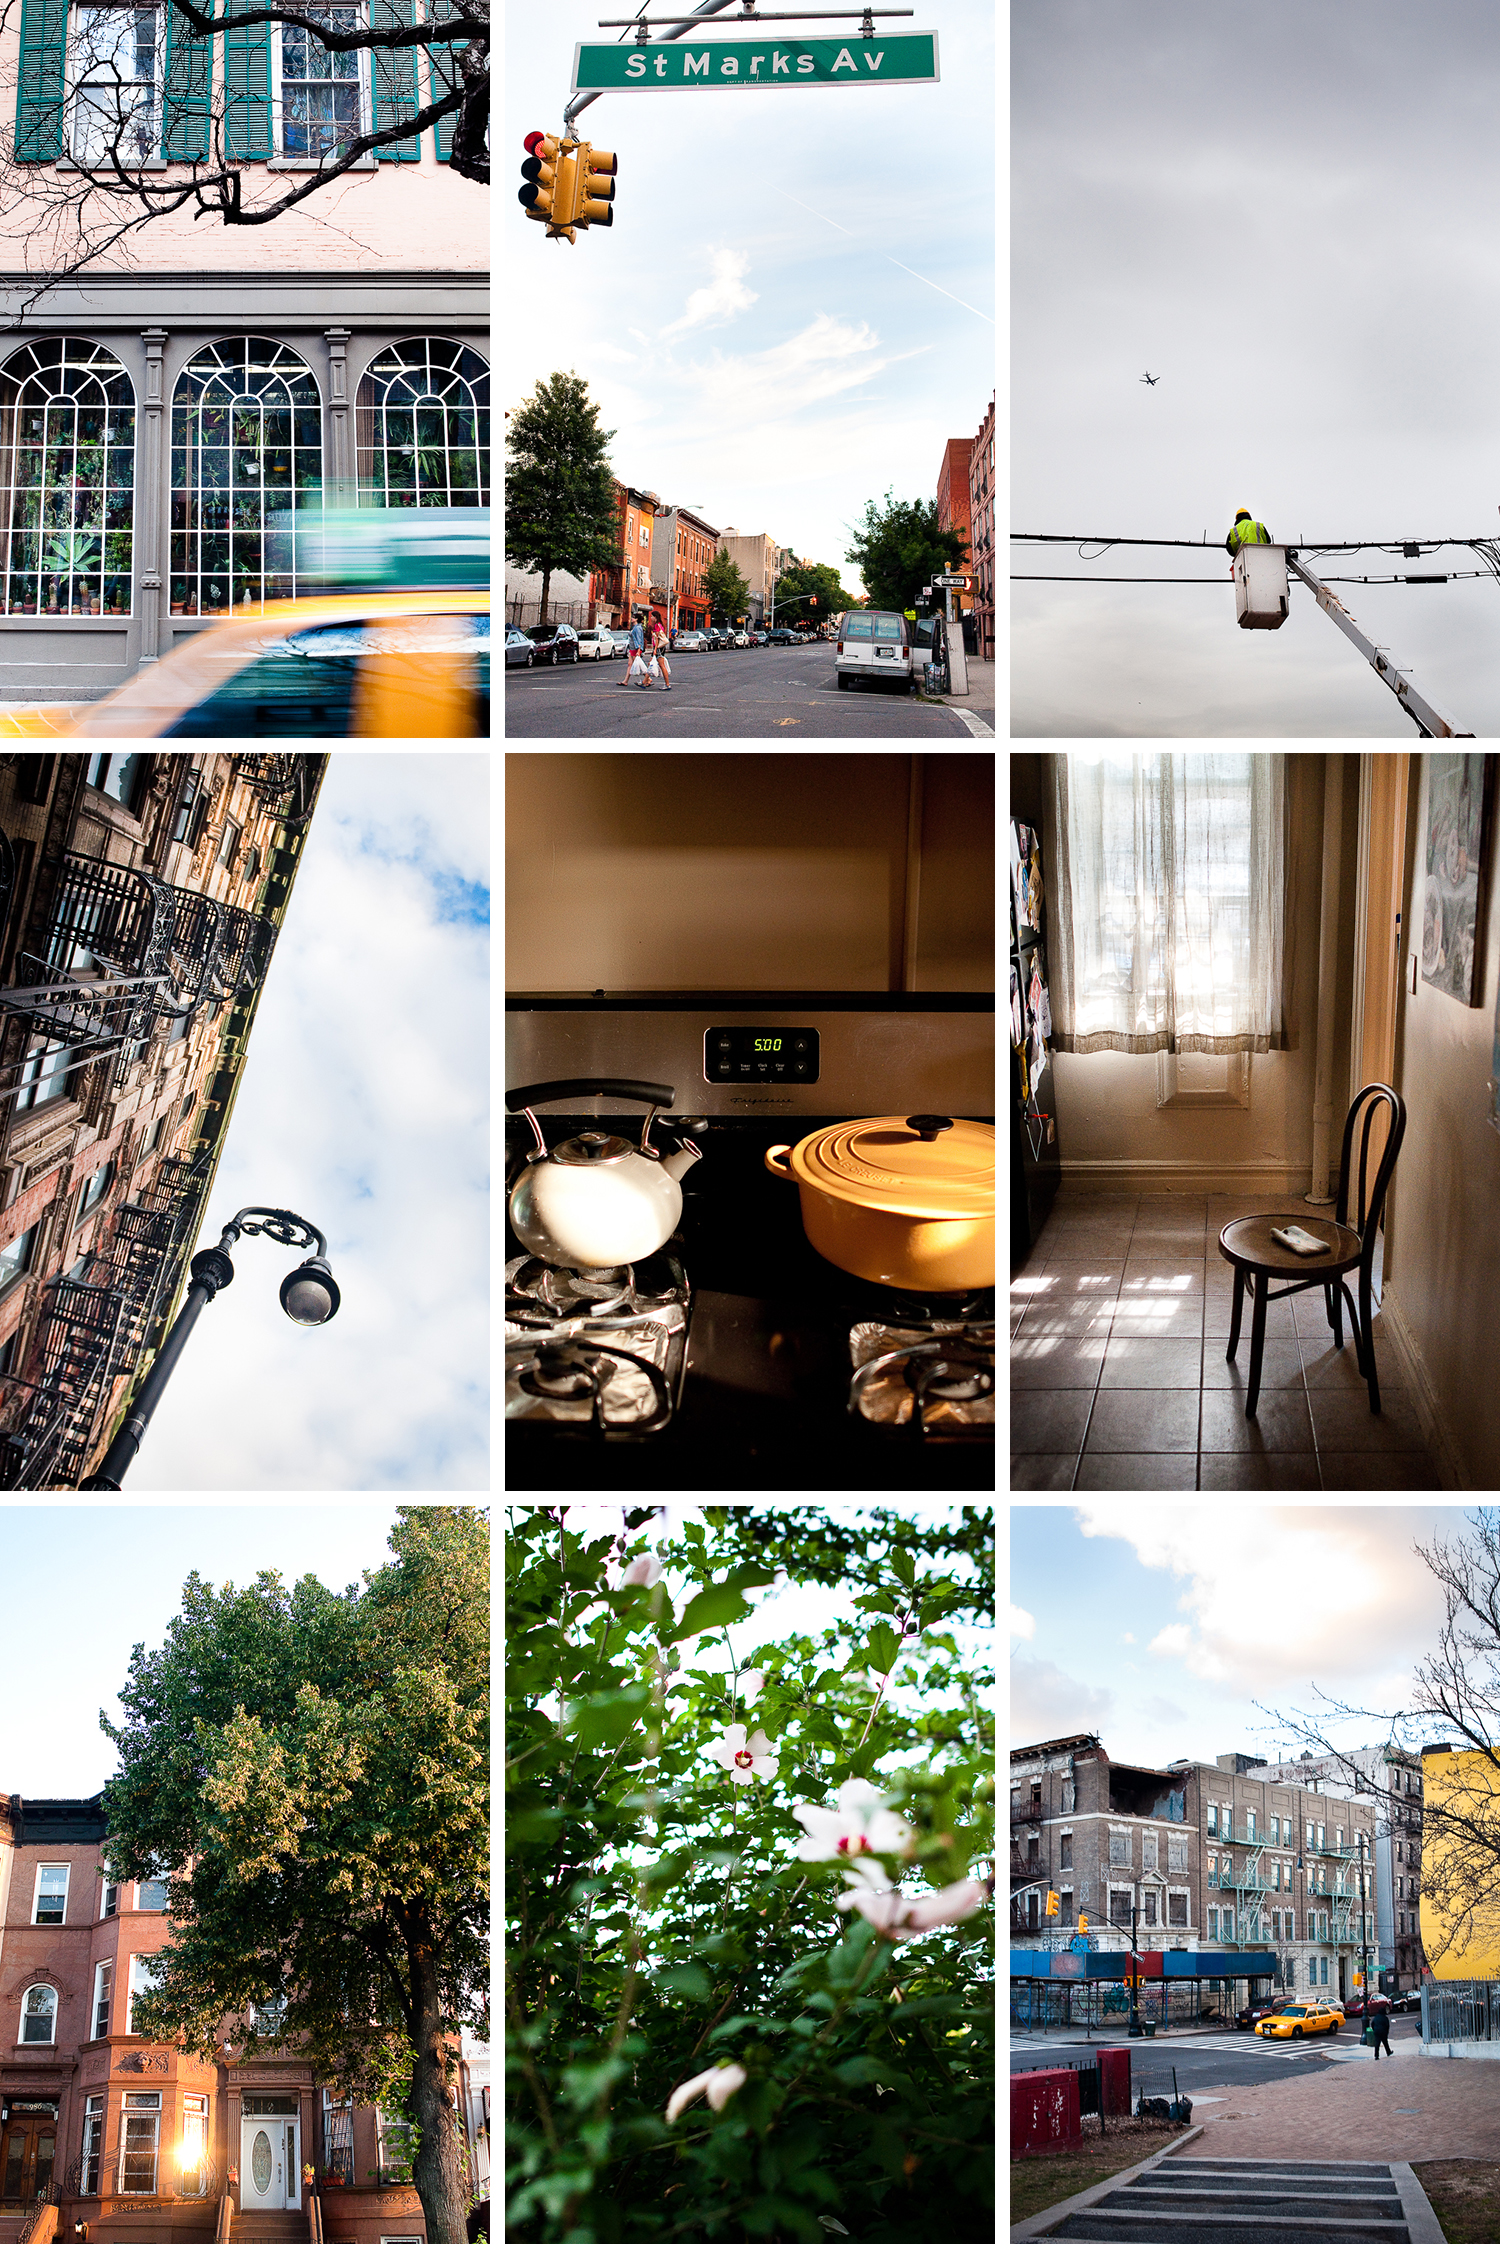 """Daily Life, New York"" -   (Row 1)   SoHo Window and Taxi  , SoHo, New York;   St. Mark's and Bedford,   Crown Heights, Brooklyn;  At Work , Crown Heights, Brooklyn; (Row 2)  Chinatown Lightpole , Chinatown, New York;  Oven , Crown Heights, Brooklyn;  The Chair in the Kitchen , Crown Heights, Brooklyn; (Row 3)  Sunset on Park Place,  Crown Heights, Brooklyn;  Hibiscus,  Crown Heights, Brooklyn;  Up Brooklyn Ave.,  Crown Heights, Brooklyn"